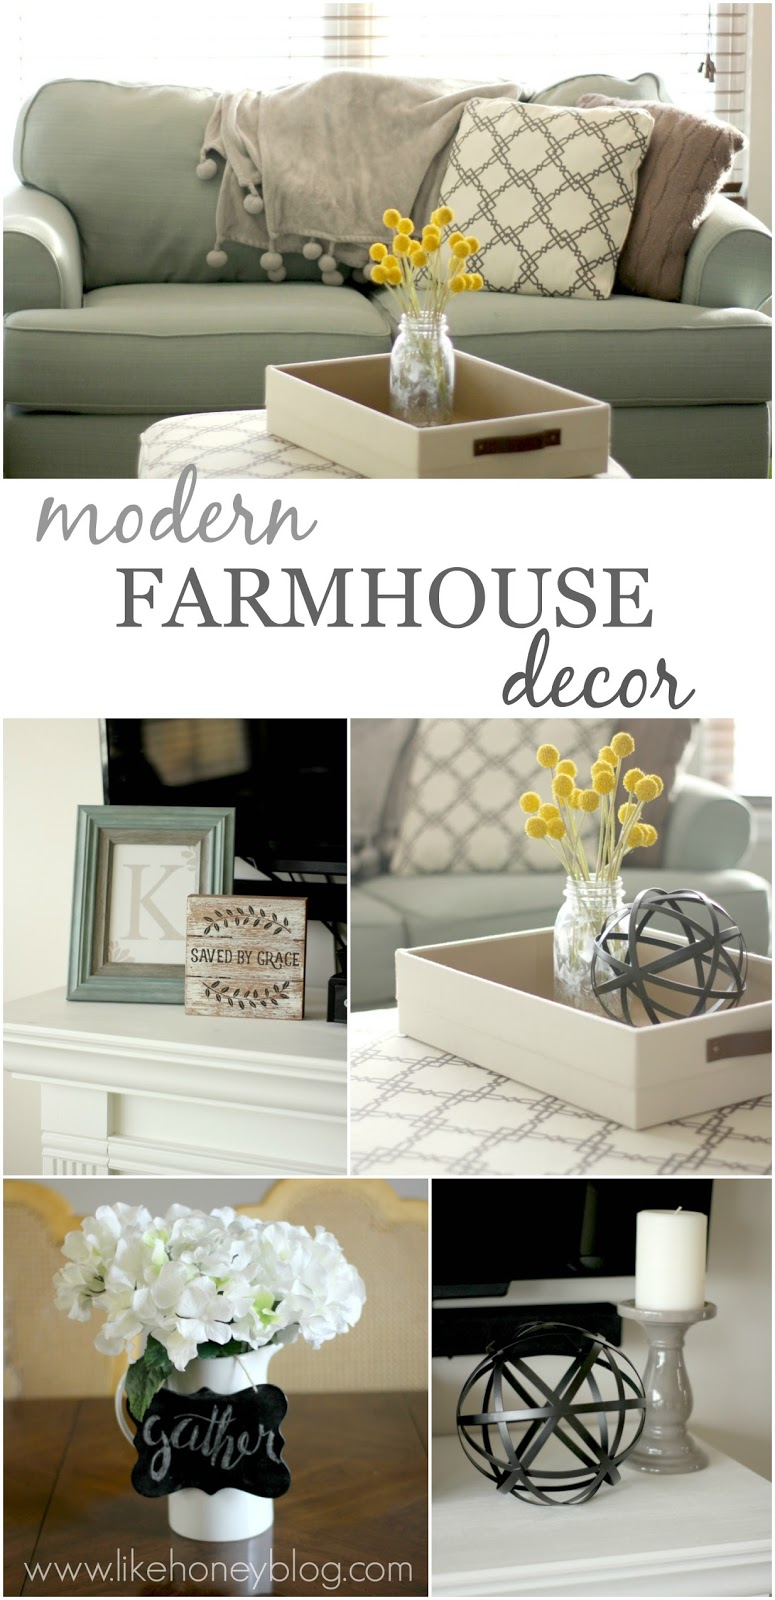 Modern Farmhouse Decor on a Budget - Like Honey